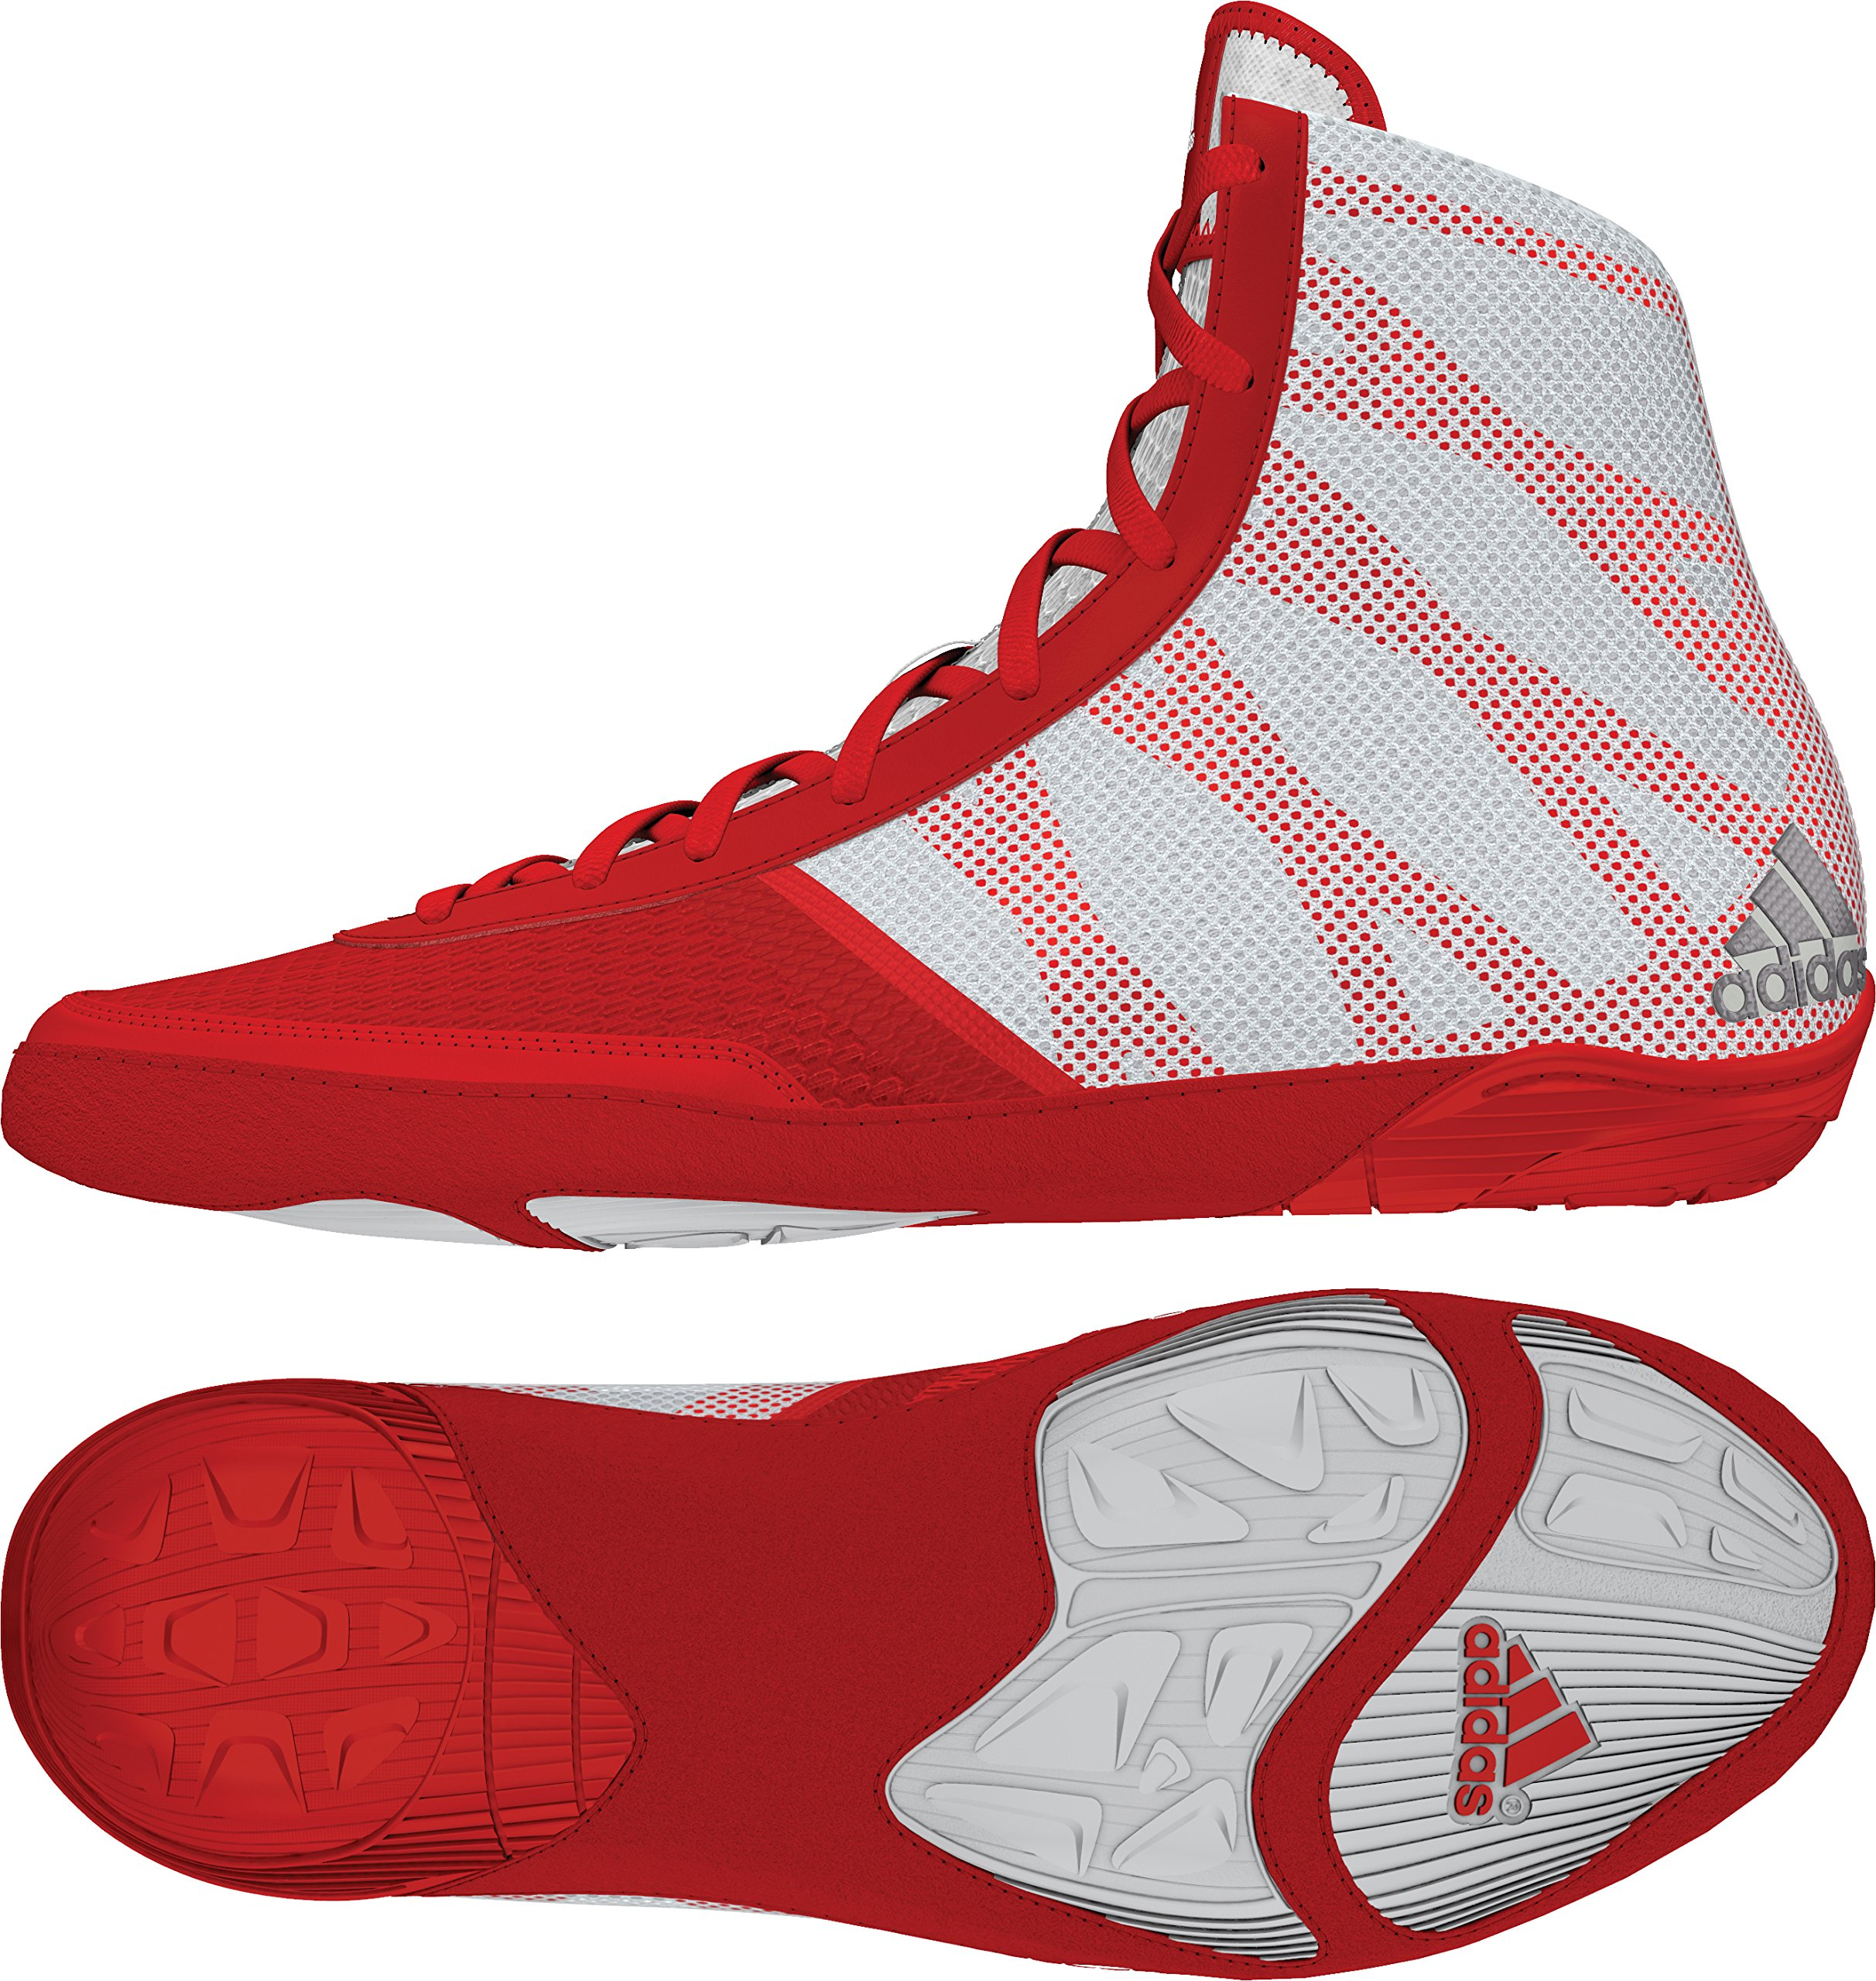 Adidas Pretereo III Wrestling Shoes - Red/Silver/White - 10.5 by adidas